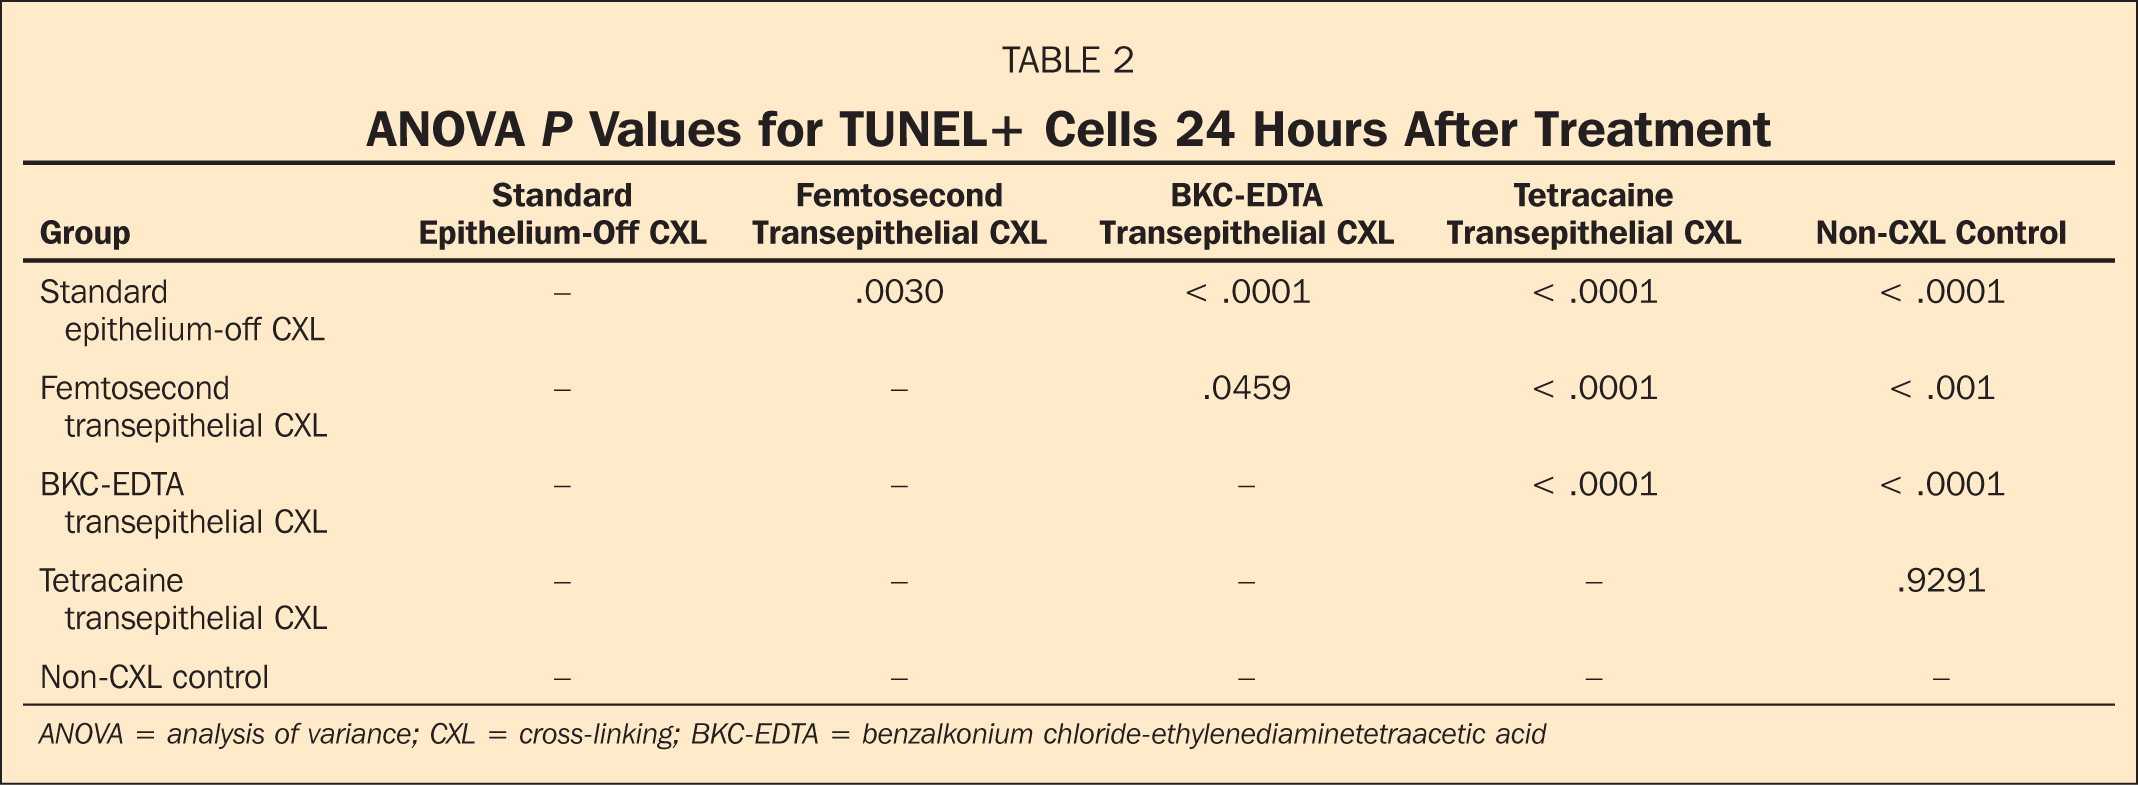 ANOVA P Values for TUNEL+ Cells 24 Hours After Treatment